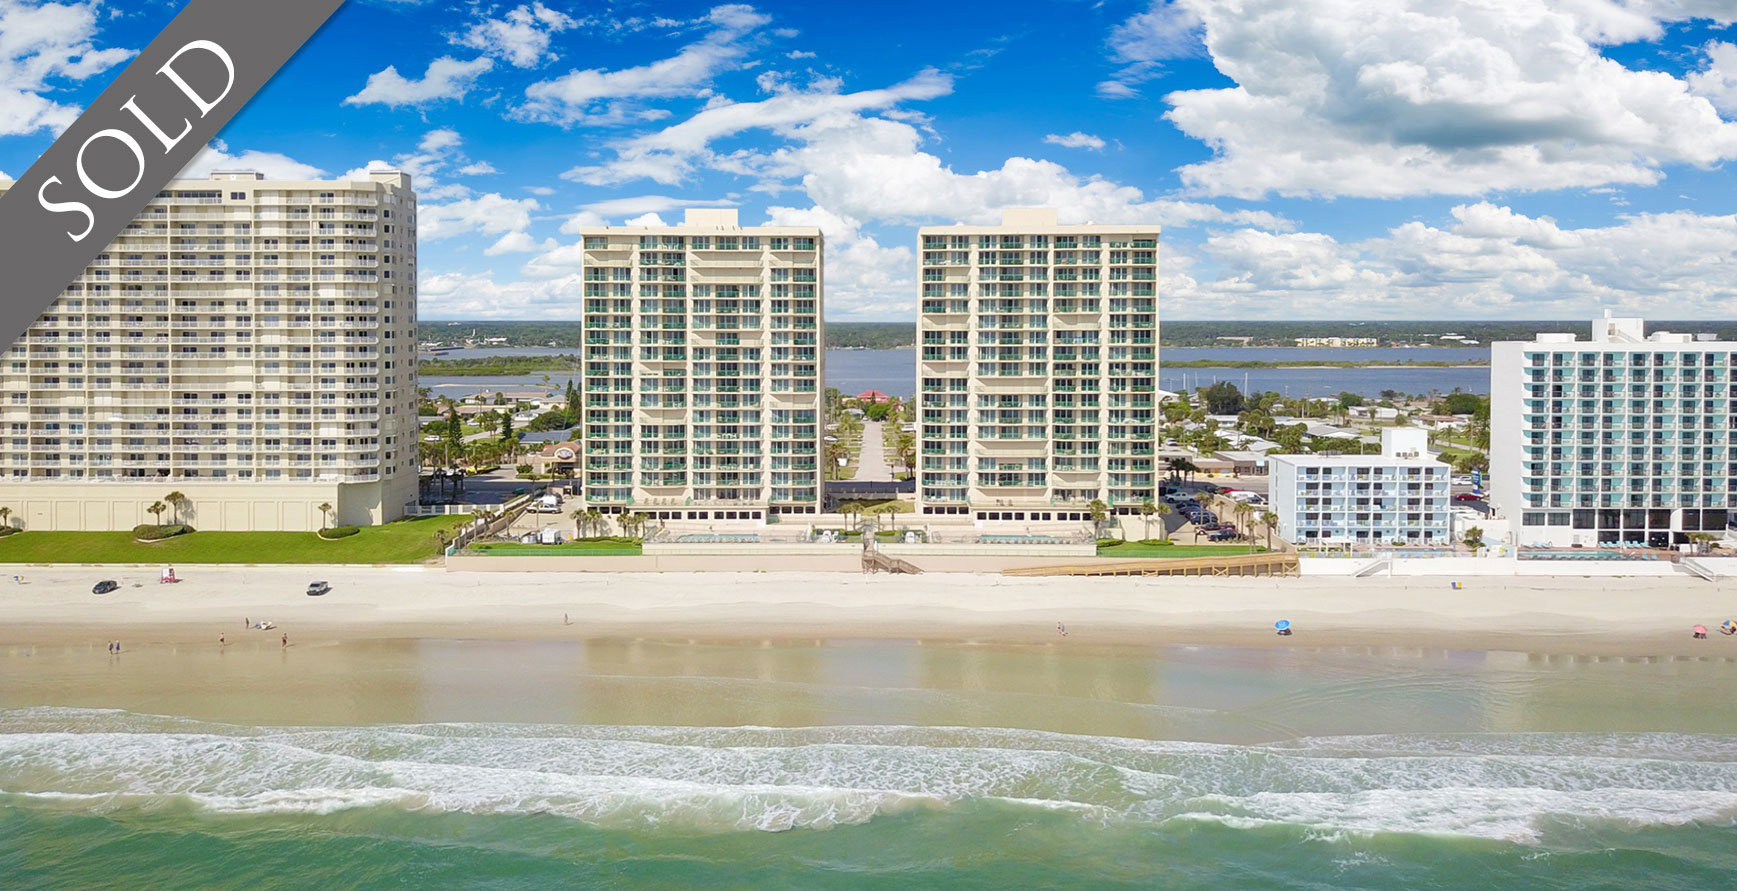 Sold Dimucci Twin Towers oceanfront condos For Sale at 3315 S Atlantic Ave Daytona Beach  Shores The LUXE Group 386-299-4043